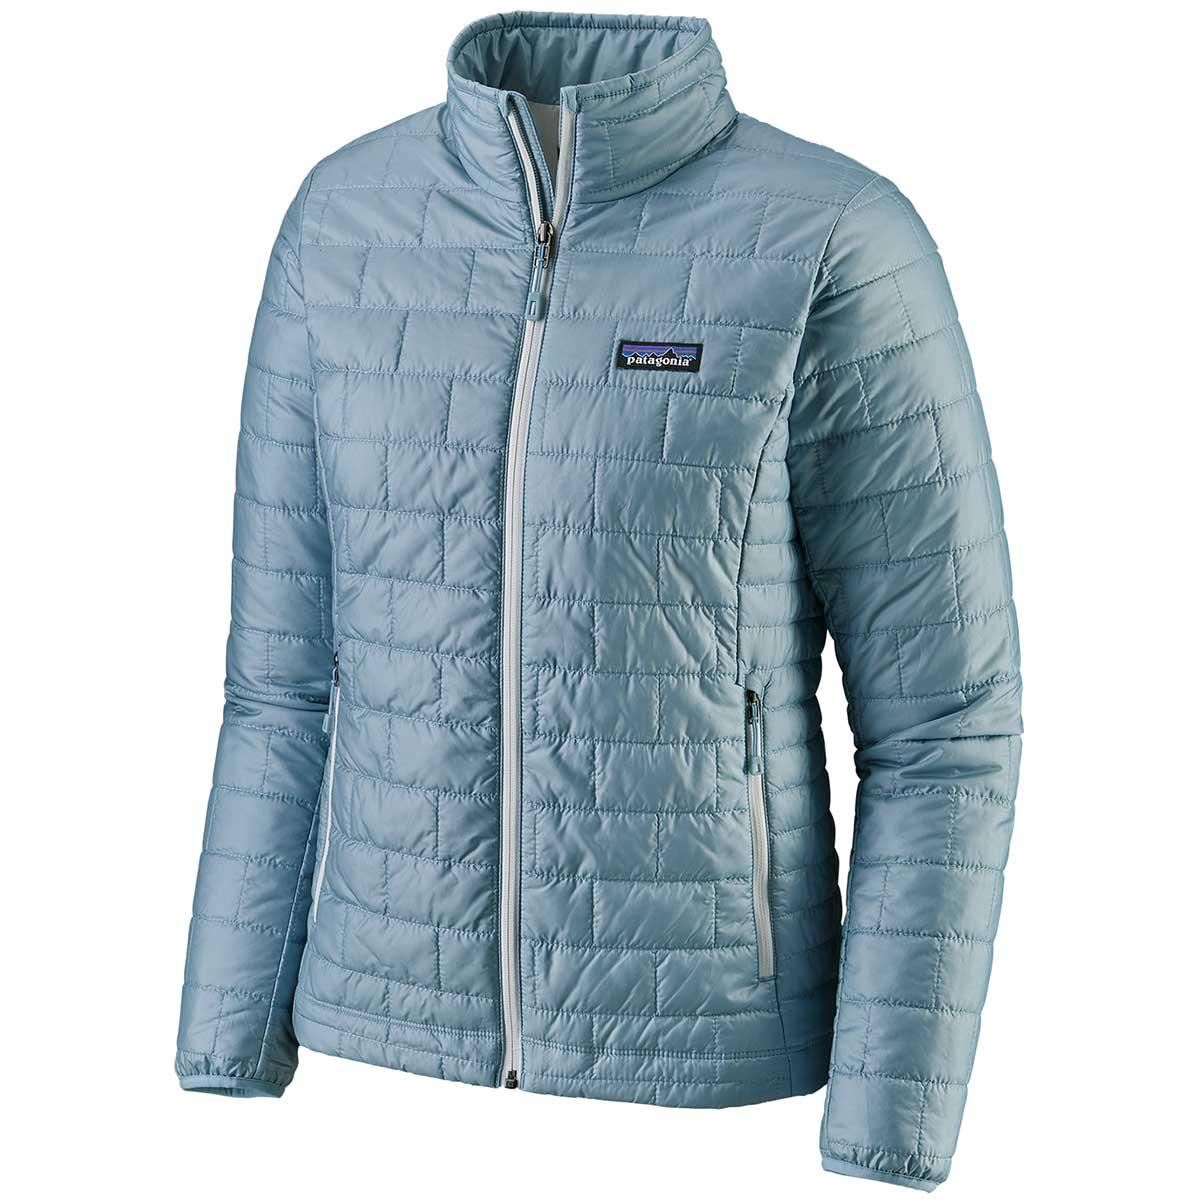 Patagonia women's Nano Puff Jacket in Big Sky Blue front view